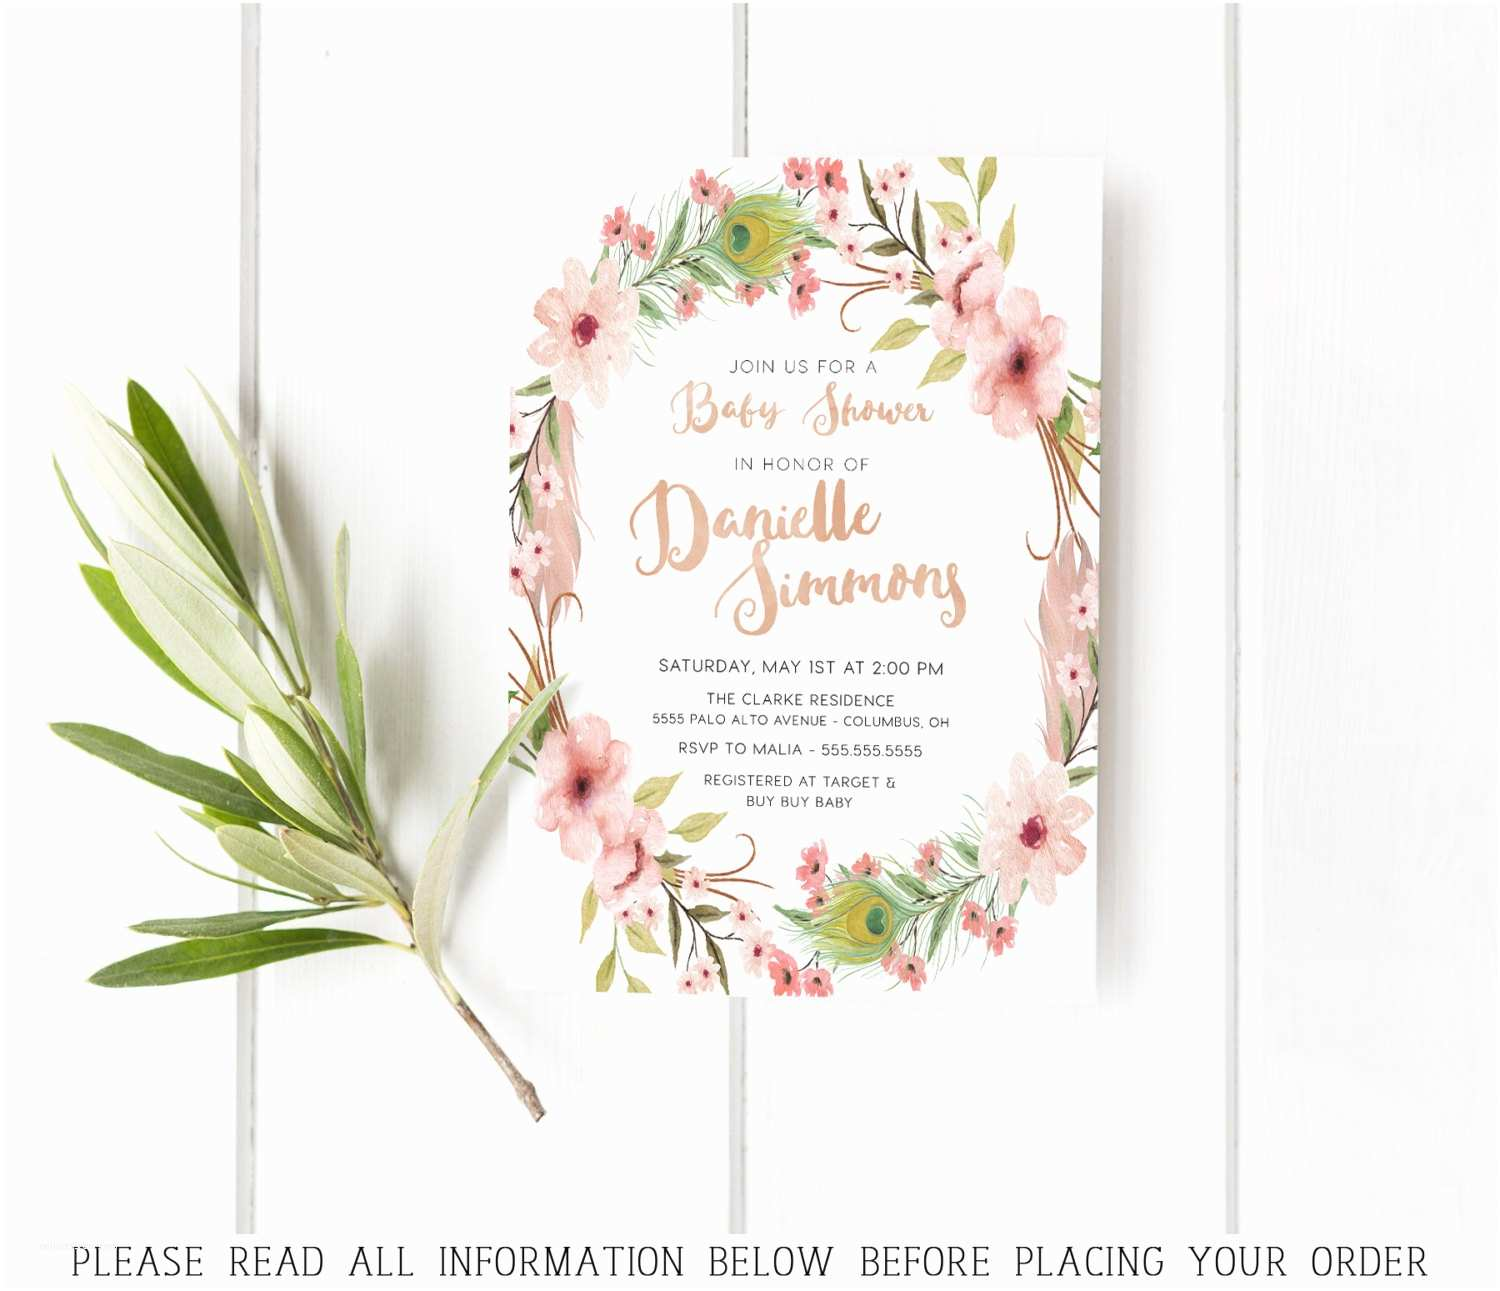 Floral Baby Shower Invitations Floral Baby Shower Invitations Flowers Feathers